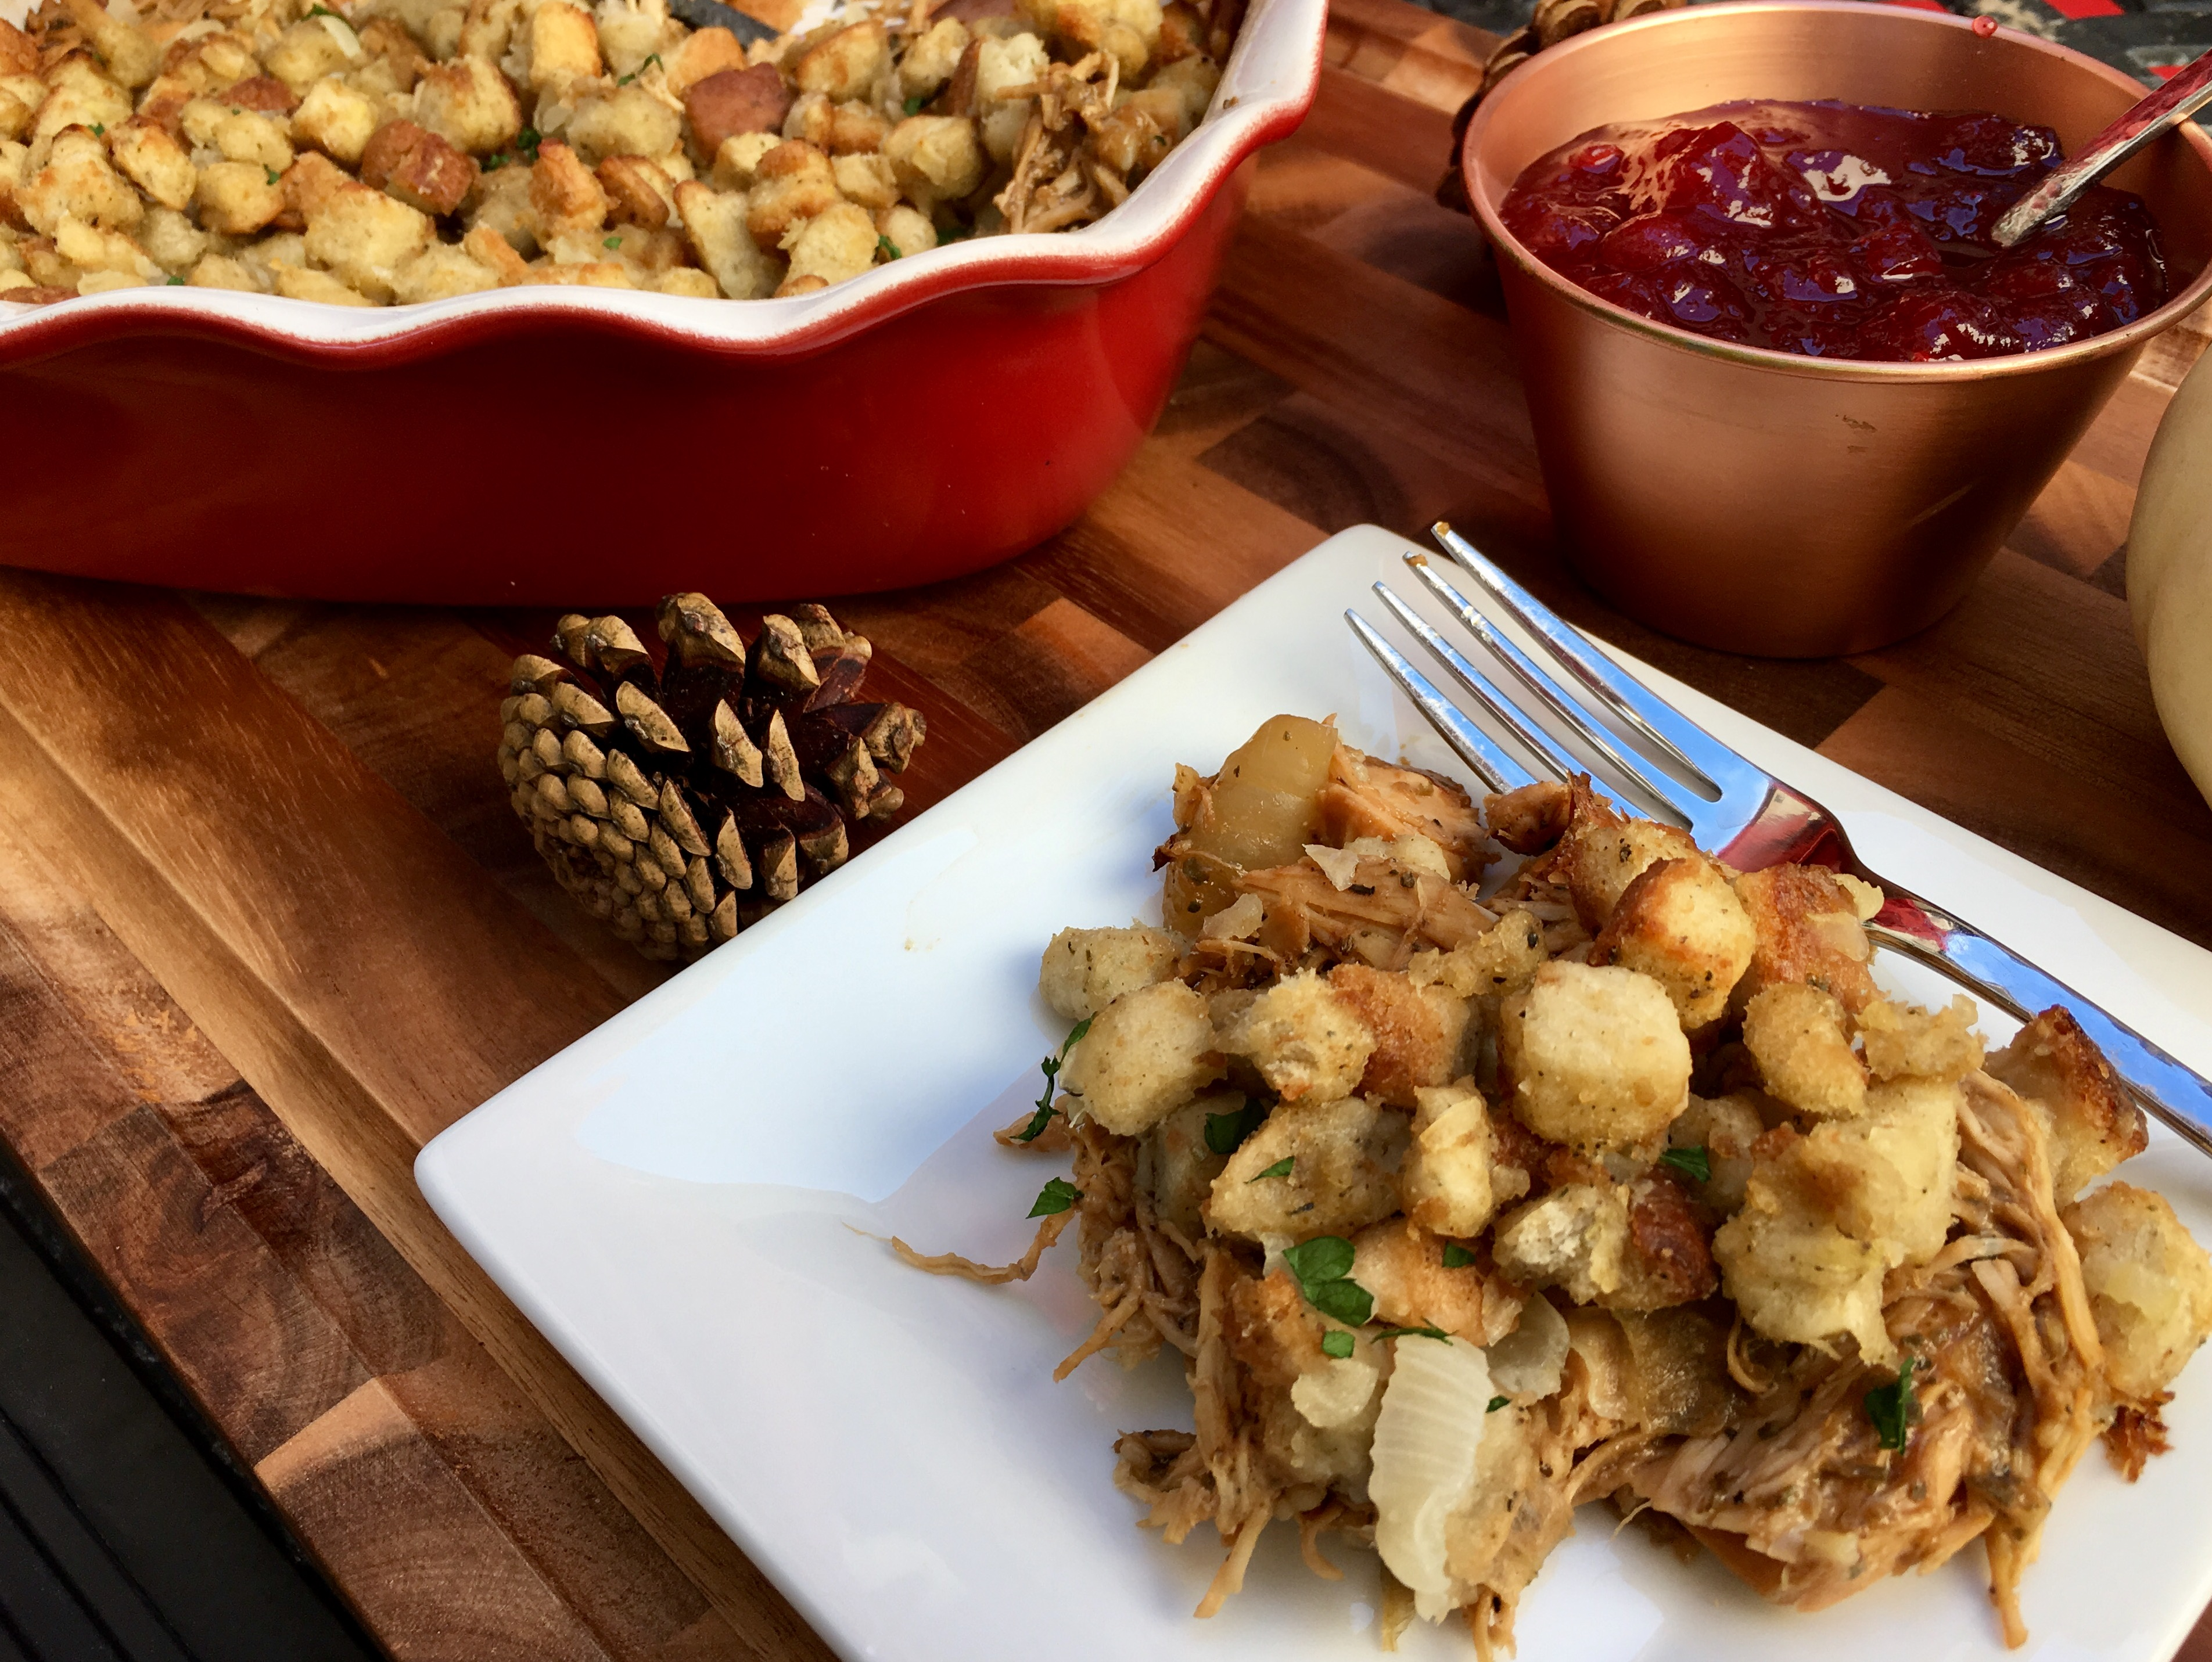 Thanksgiving Dinner Casserole - Cooking Up Happiness